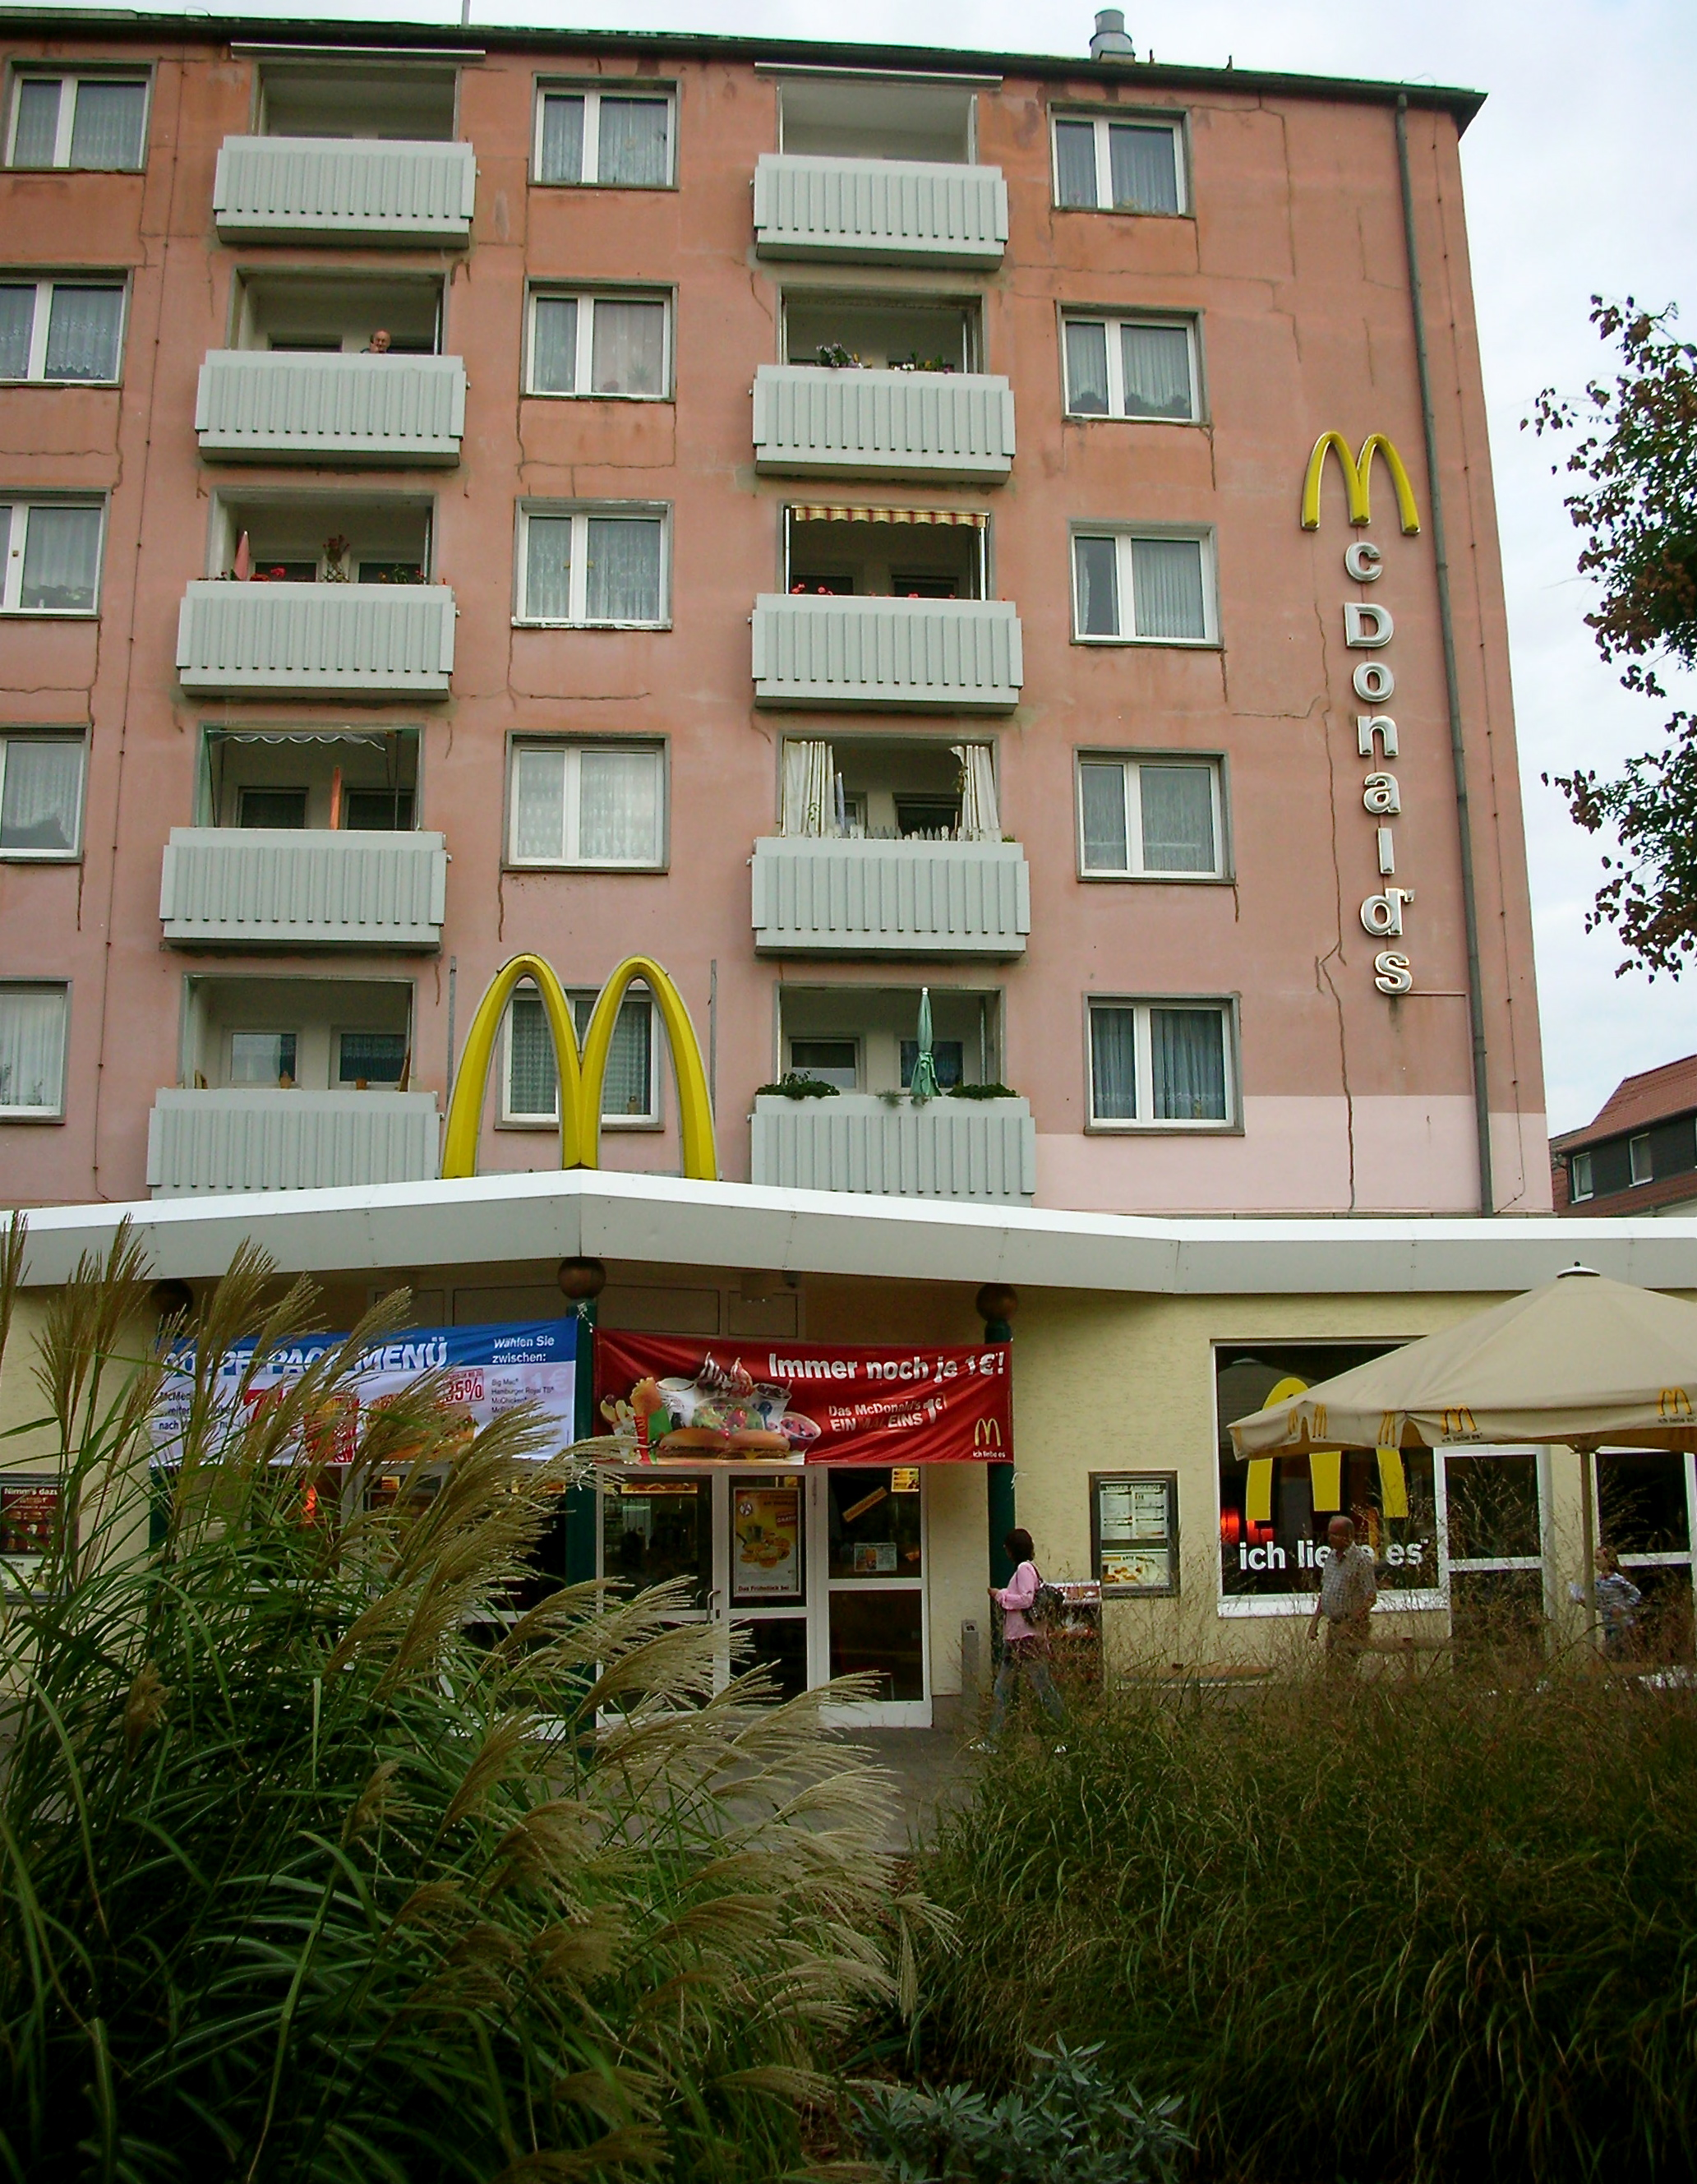 A McDonald's sign scales the wall of an apartment complex in Dessau